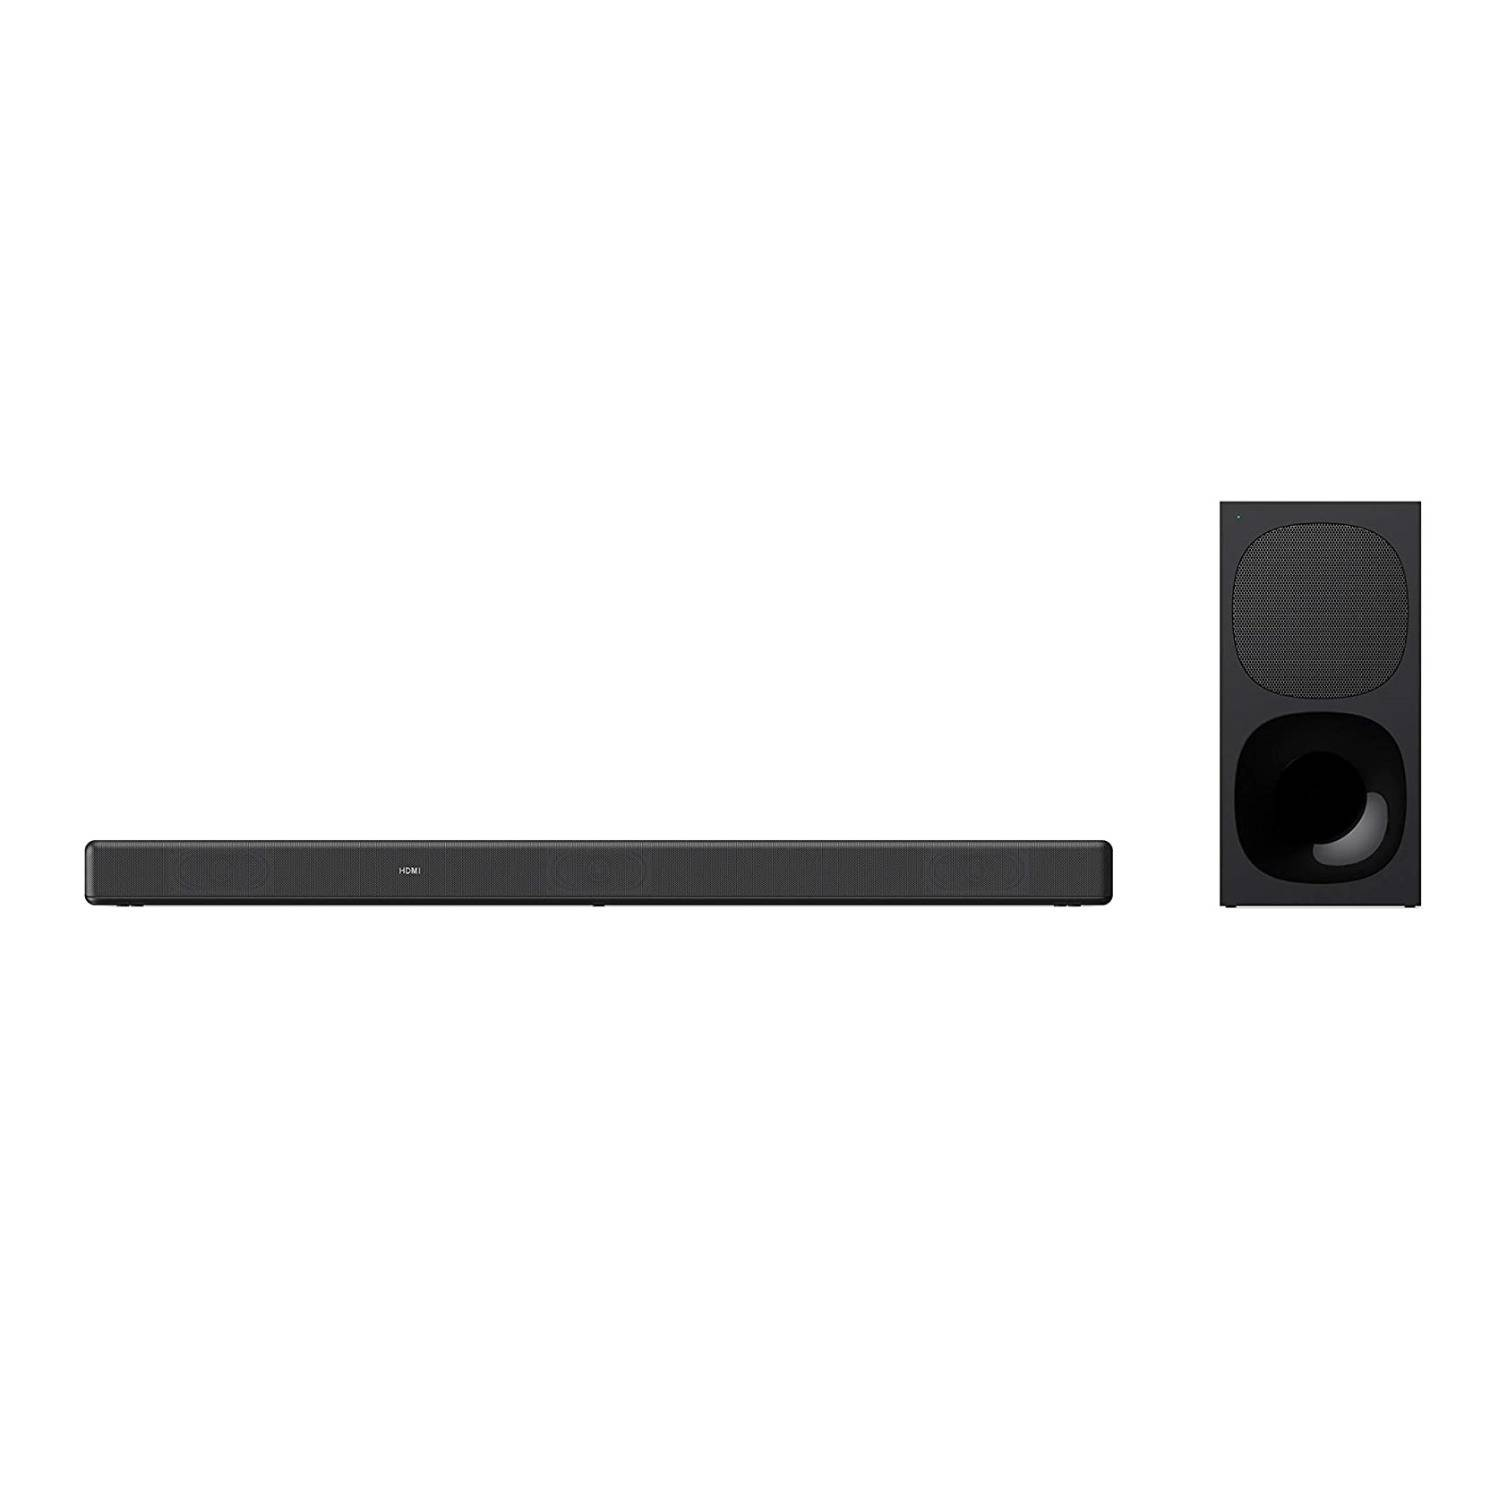 Sony HT-G700 3.1-Channel Dolby Atmos and DTS:X Soundbar with Bluetooth and Wireless Subwoofer